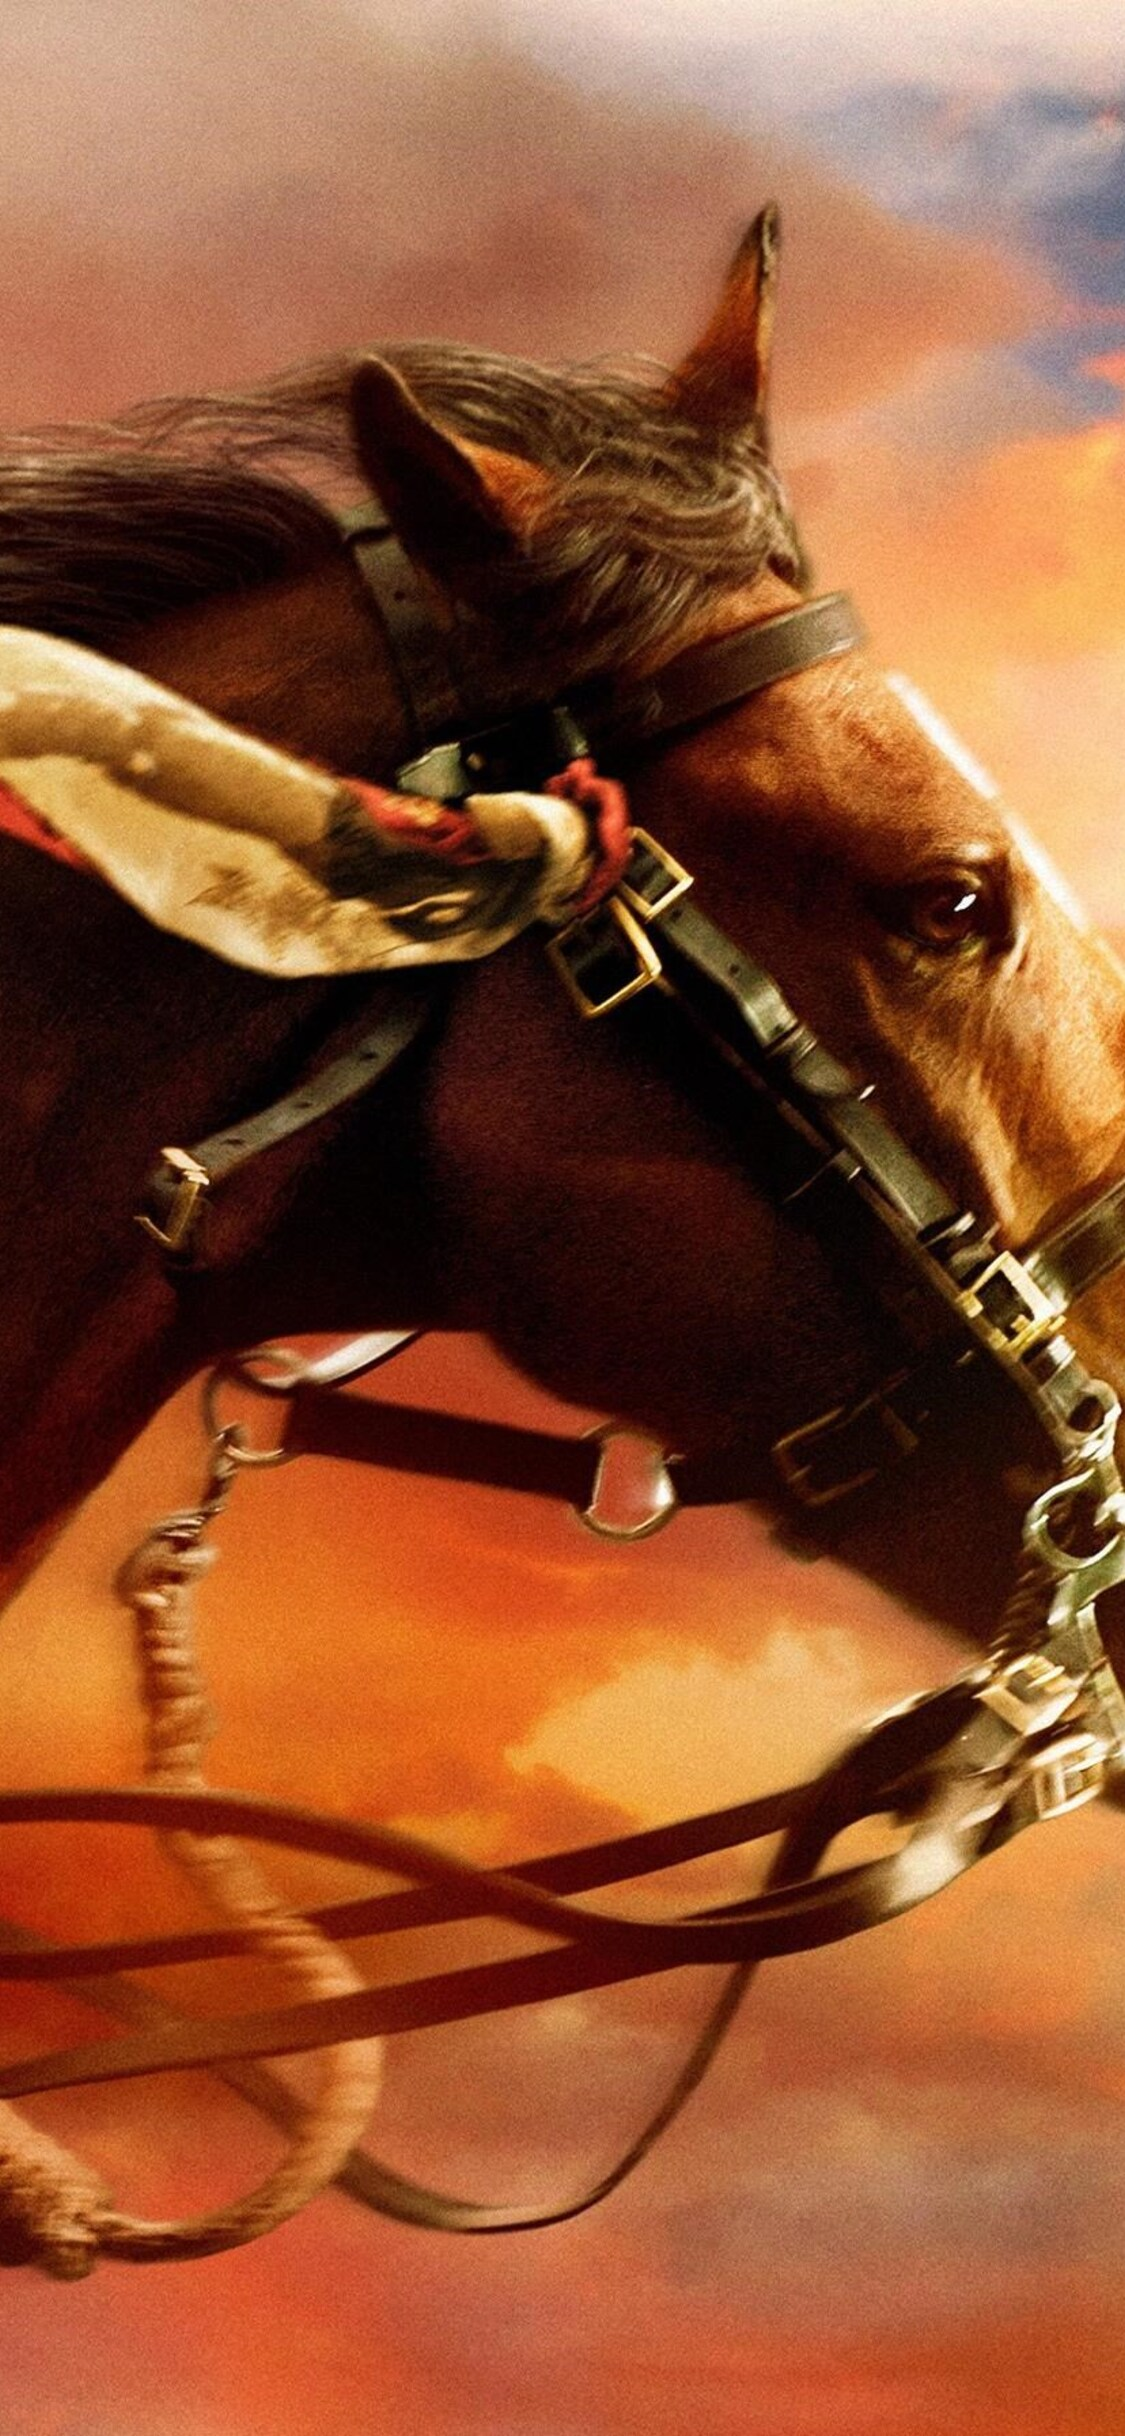 1125x2436 War Horse Iphone Xs Iphone 10 Iphone X Hd 4k Wallpapers Images Backgrounds Photos And Pictures